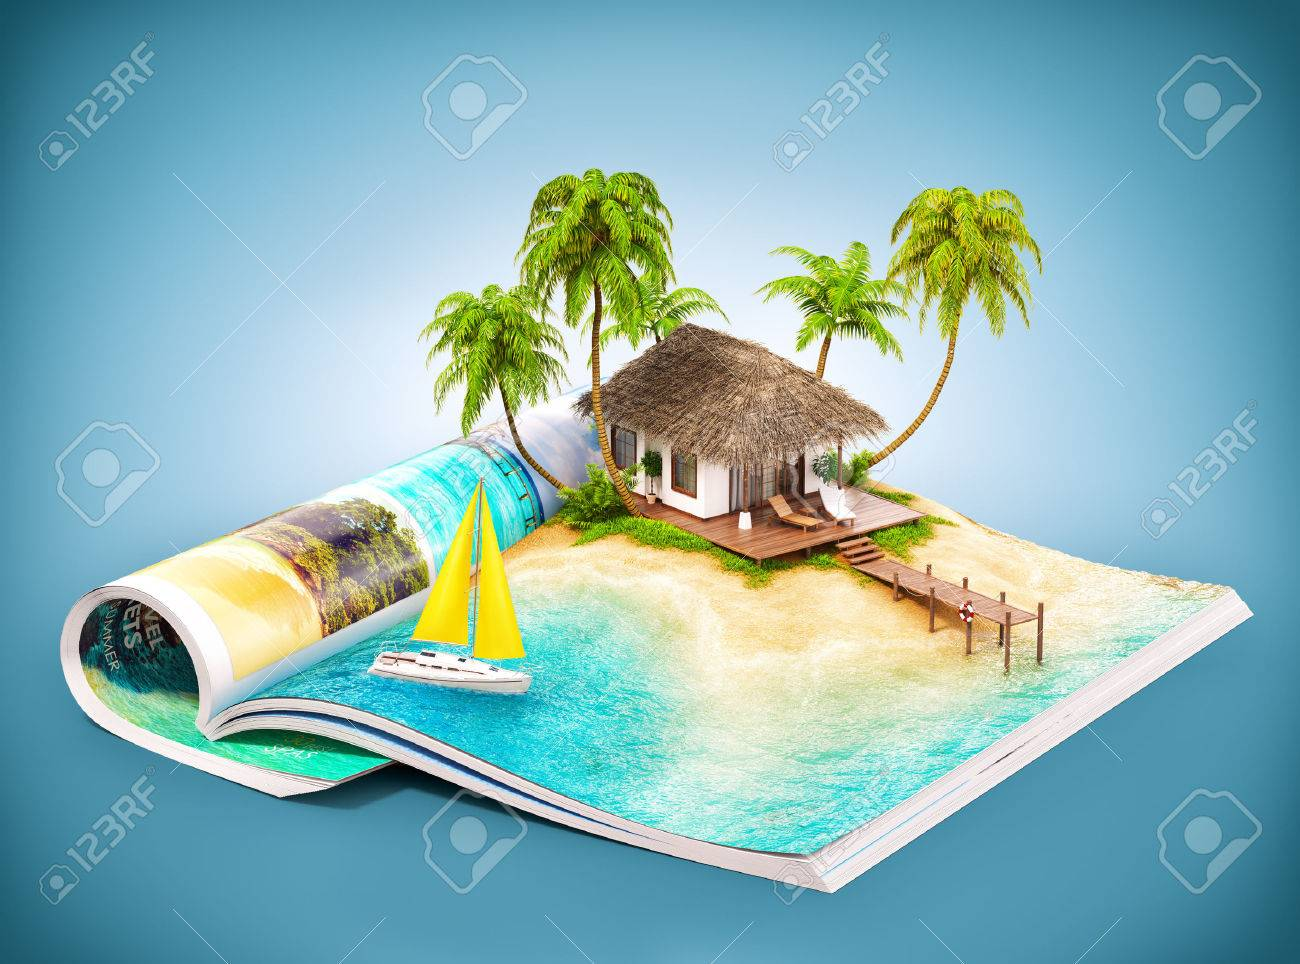 Tropical island with bungalow and pier on a page of opened magazine.  Unusual travel illustration Stock Illustration - 45444509